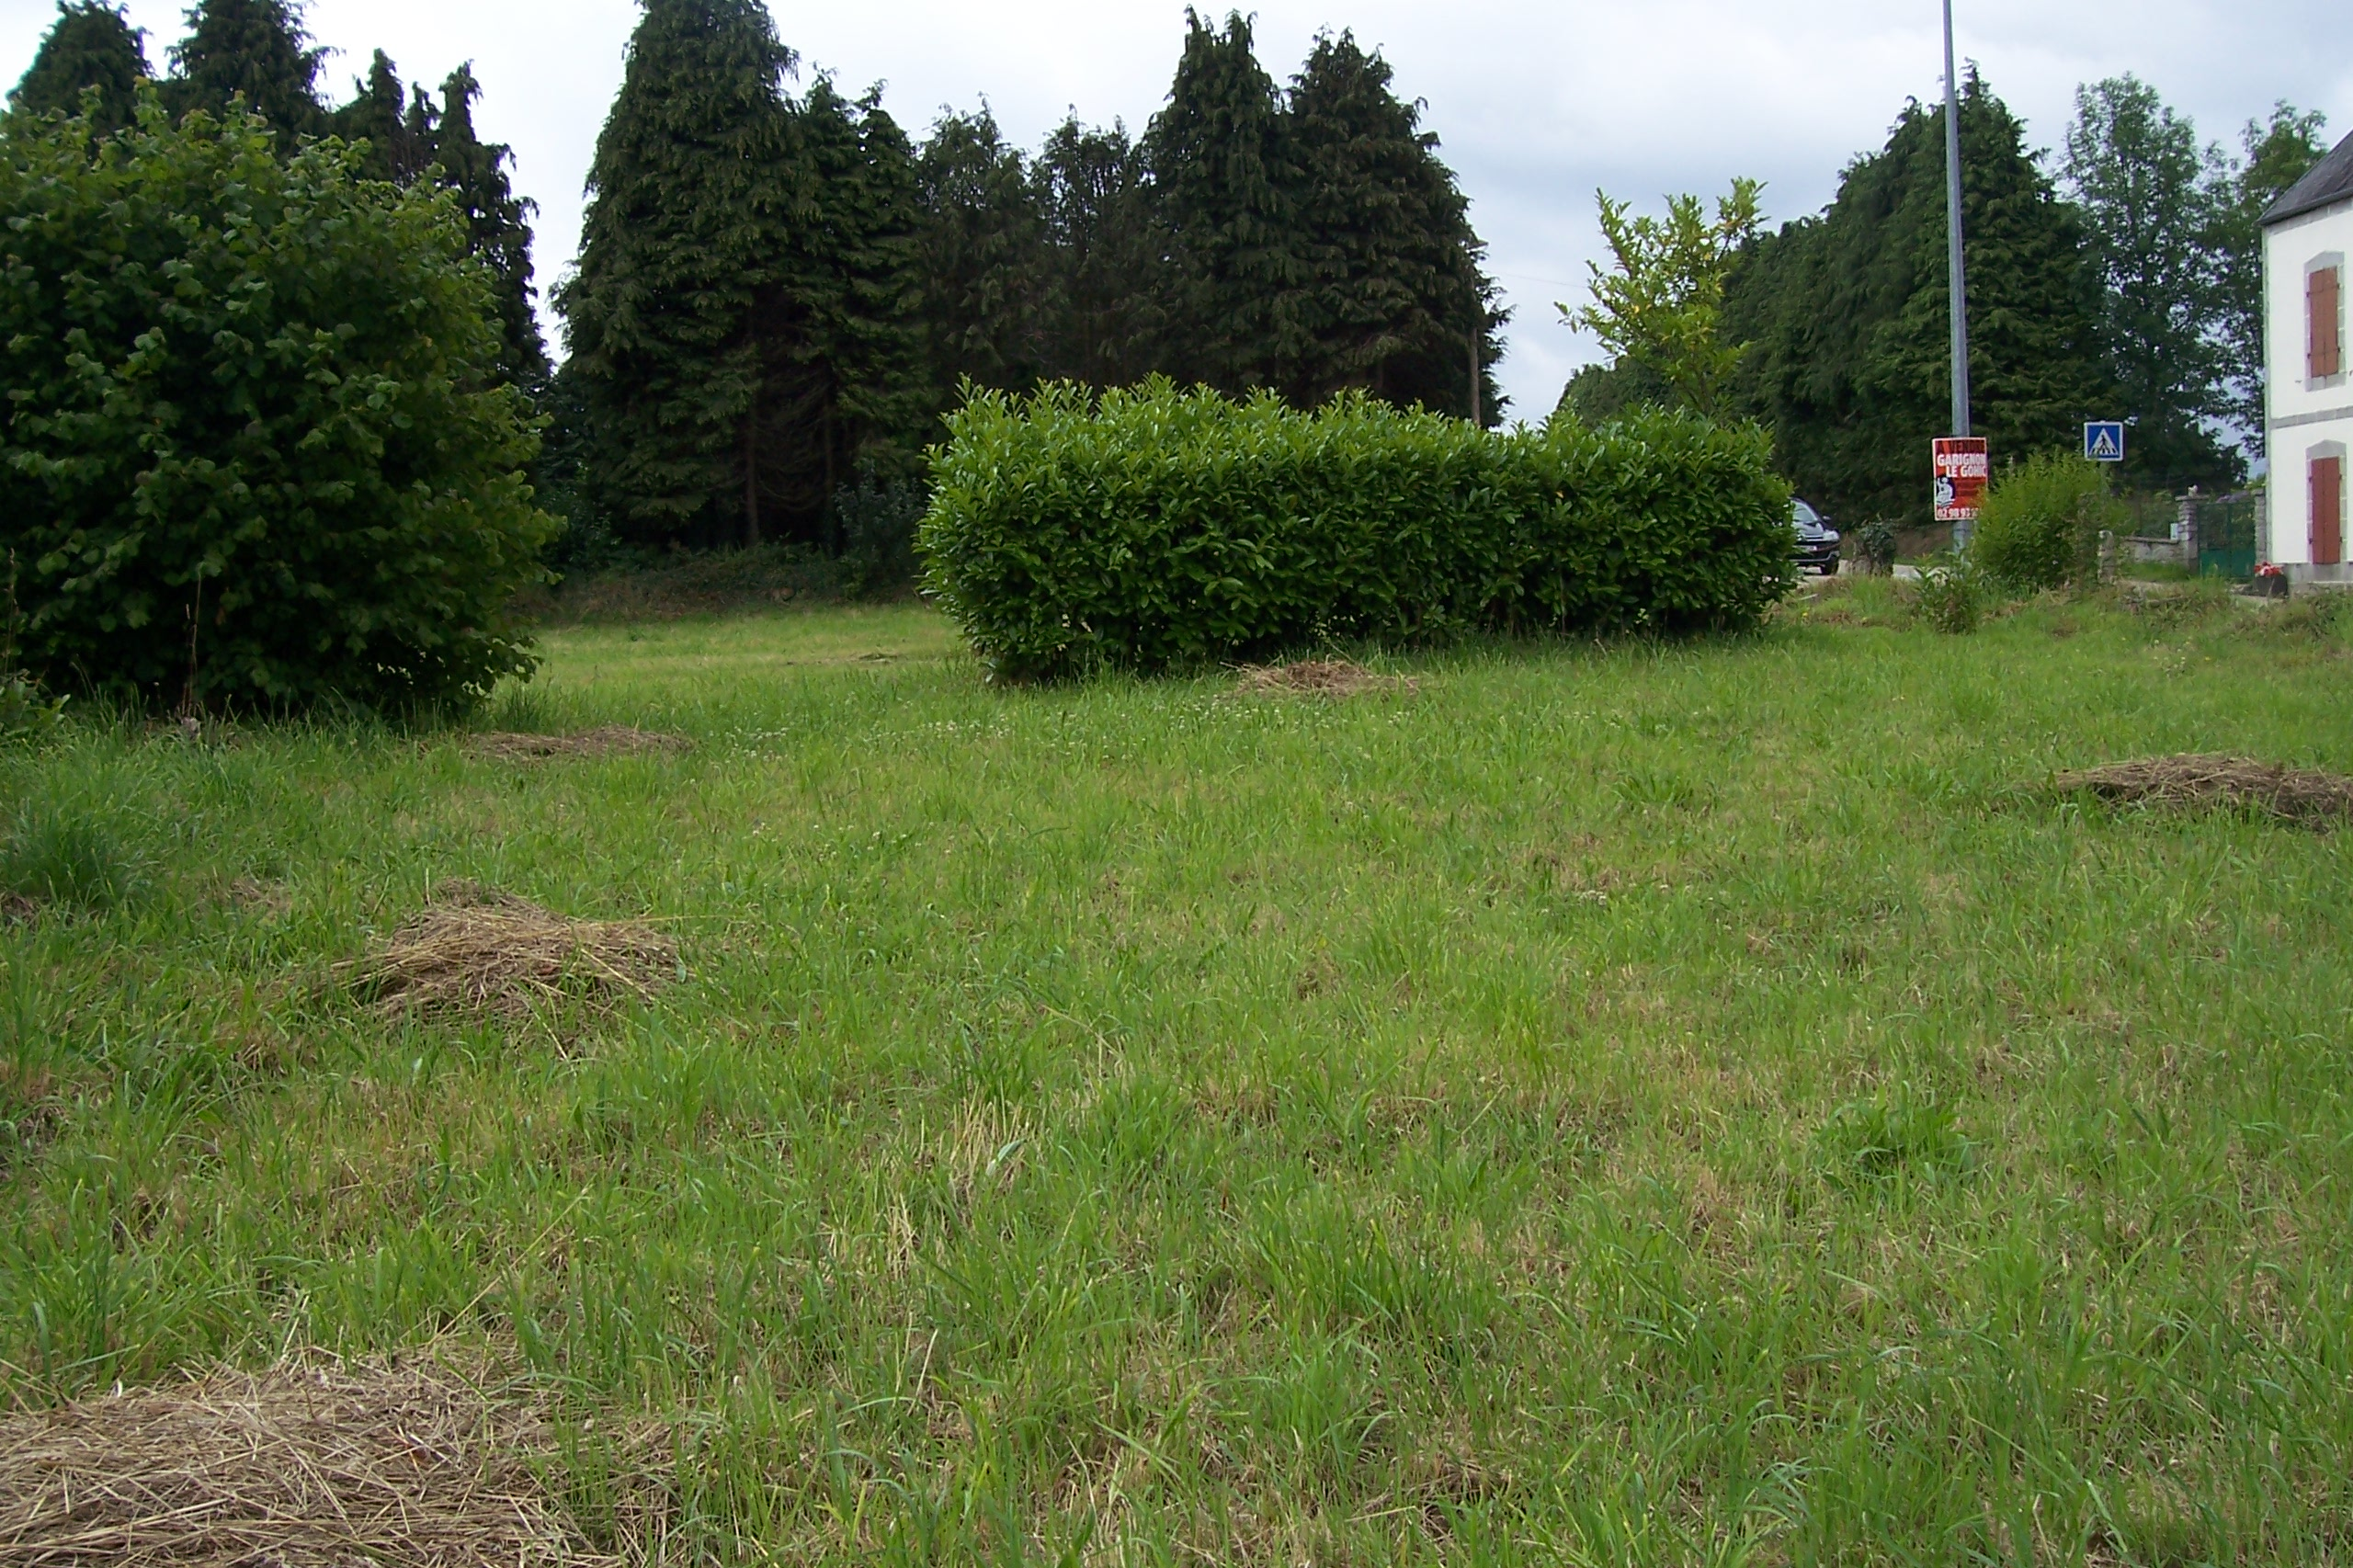 brittany-property-for-sale-M779-22914159-01